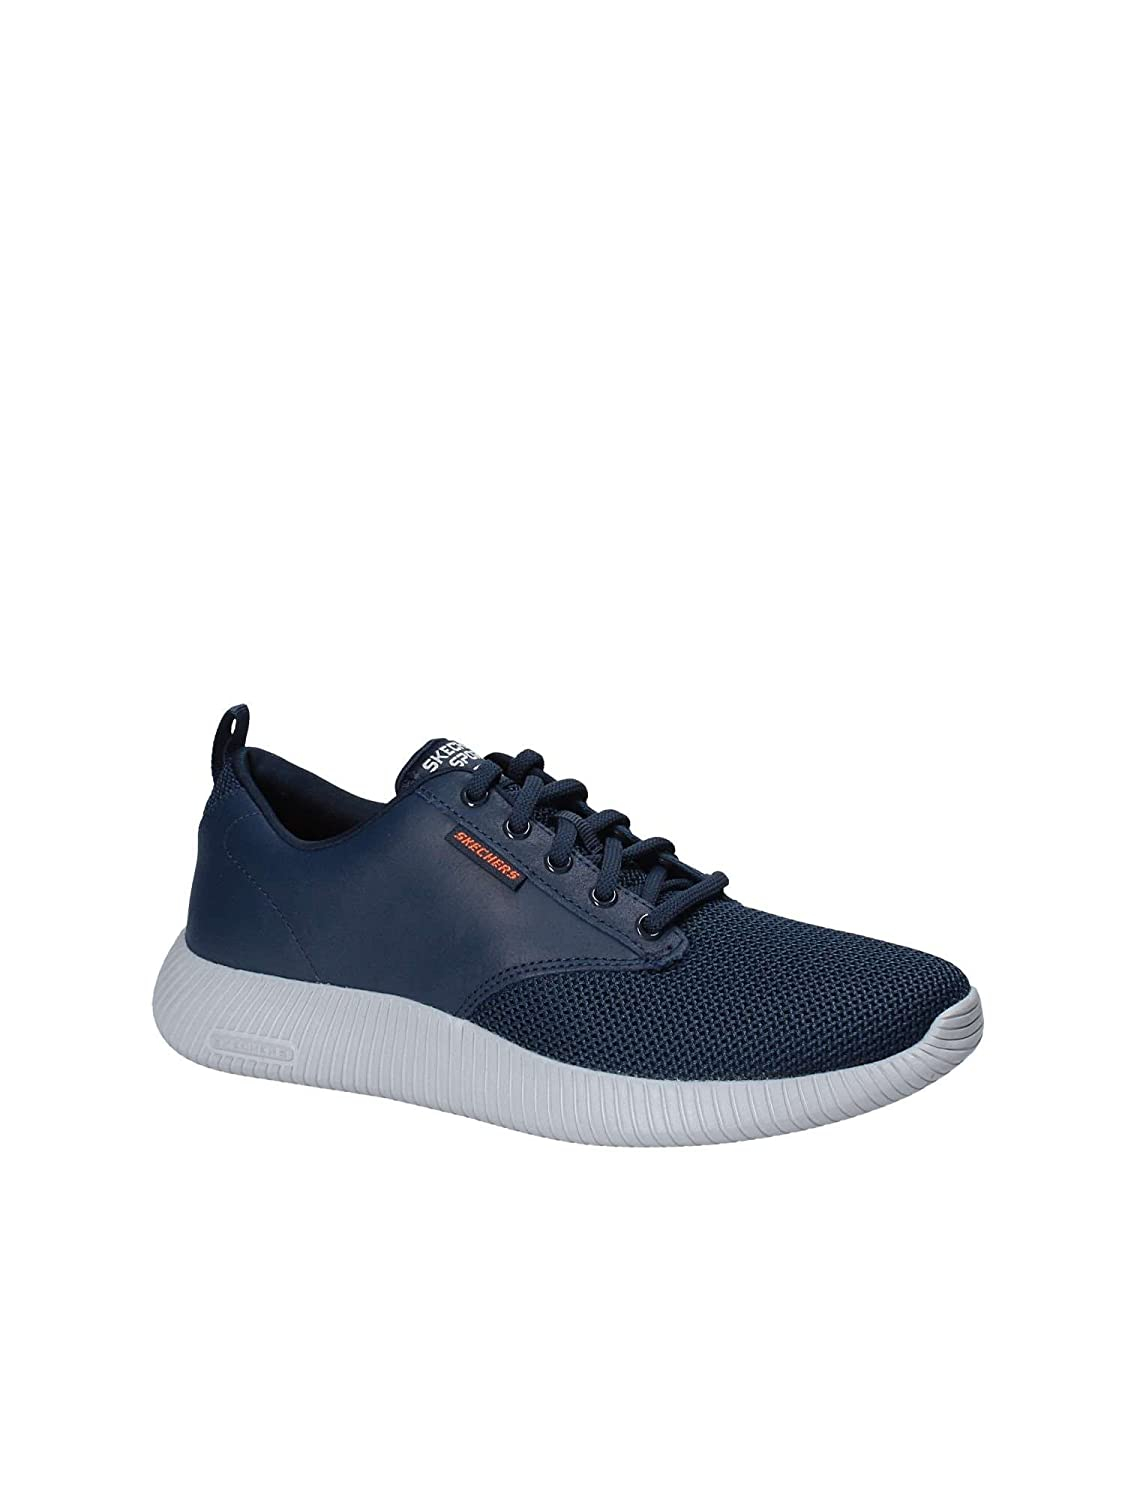 Skechers 52398 Mens Casual Lace Up Trainers: AtCKG